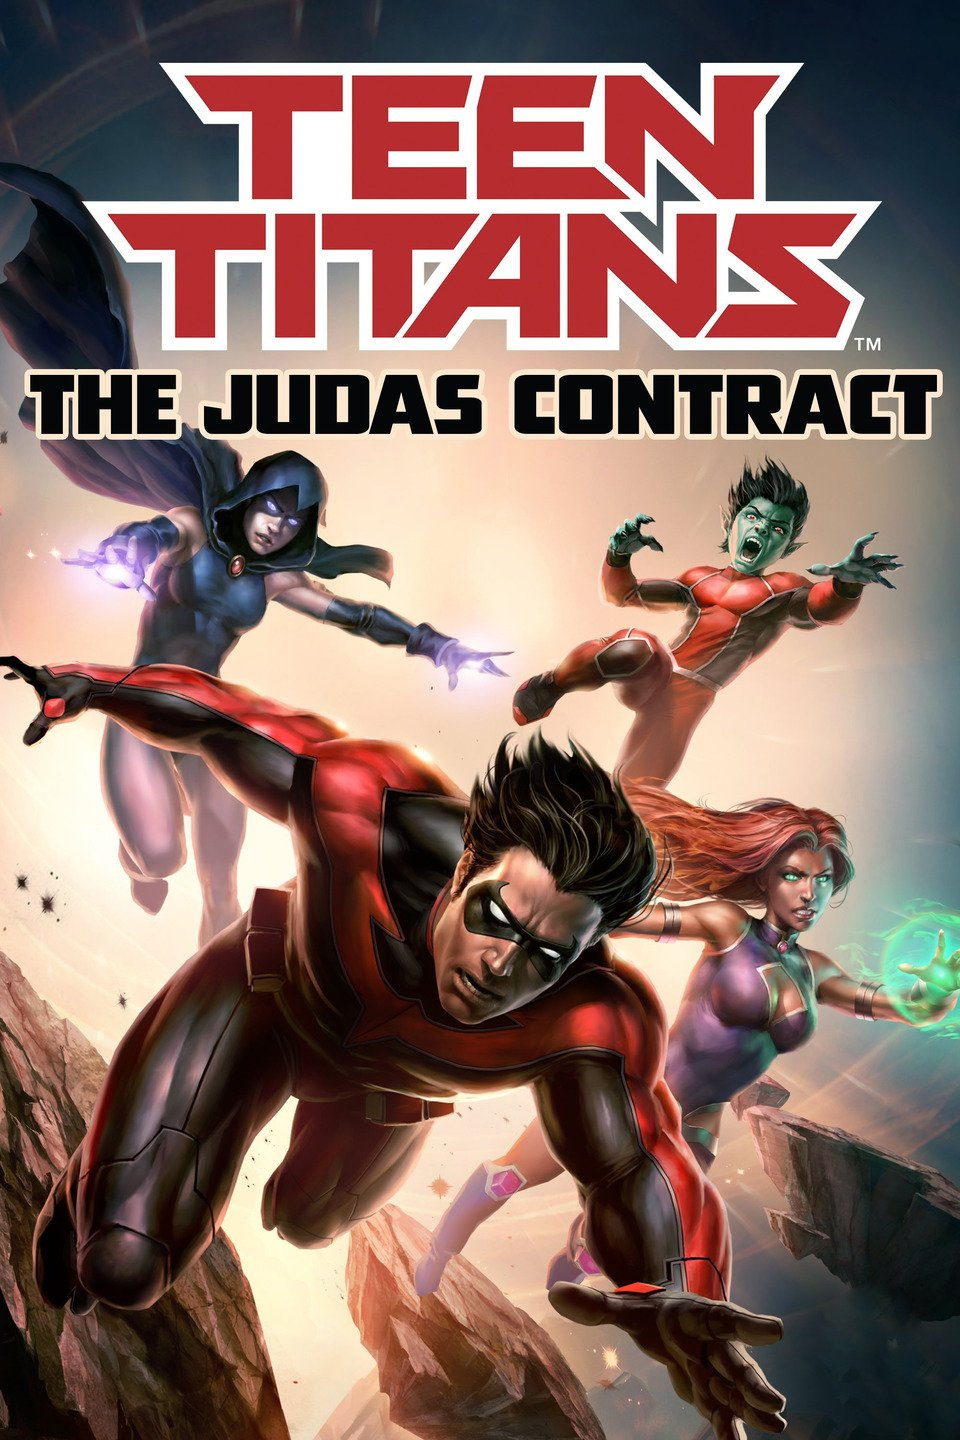 Teen Titans: The Judas Contract - Wikipedia